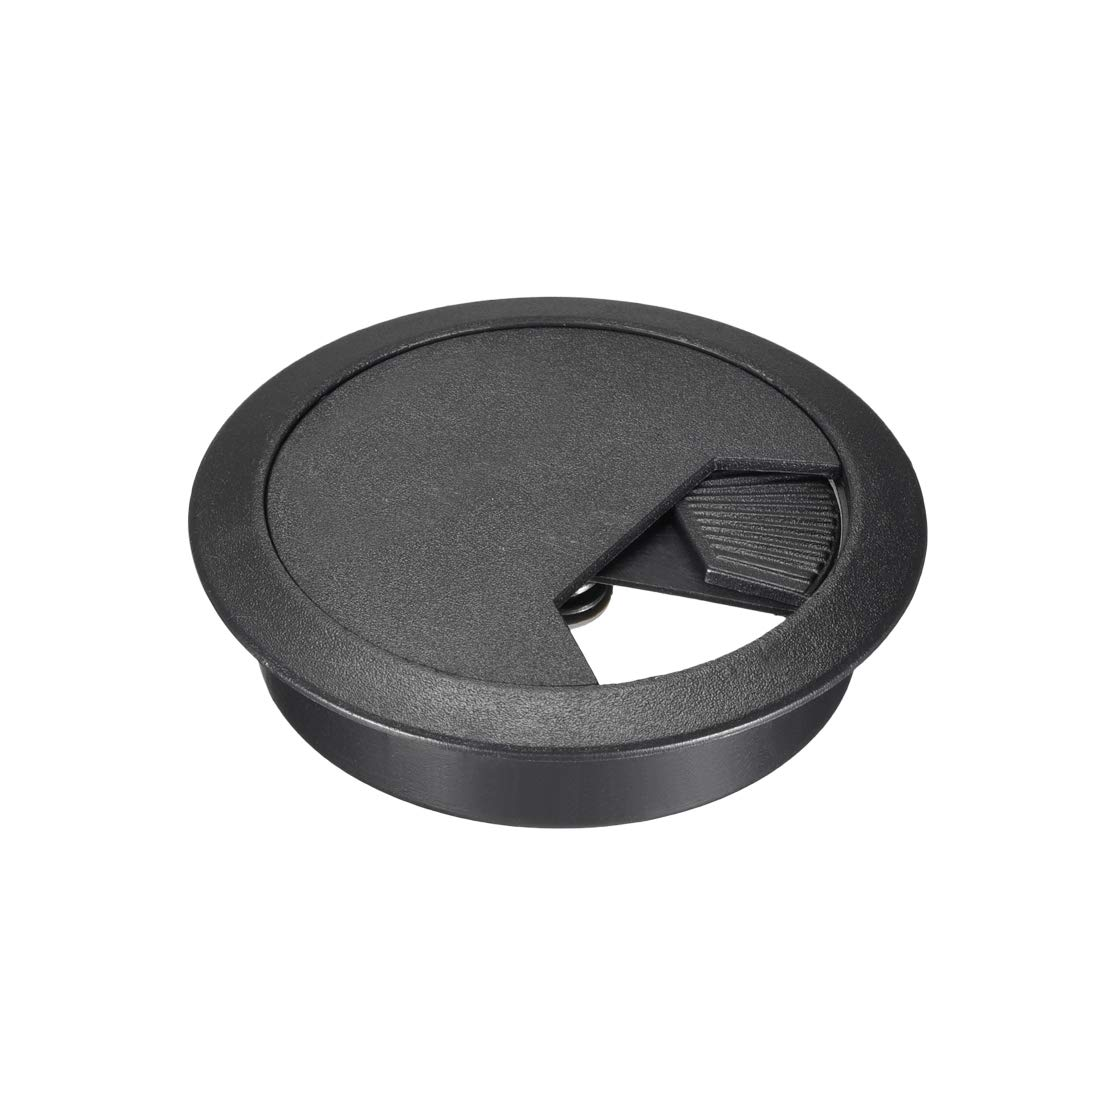 Black uxcell Cable Hole Cover 20 Pcs 2-1//8 Plastic Desk Grommet for Wire Organizer